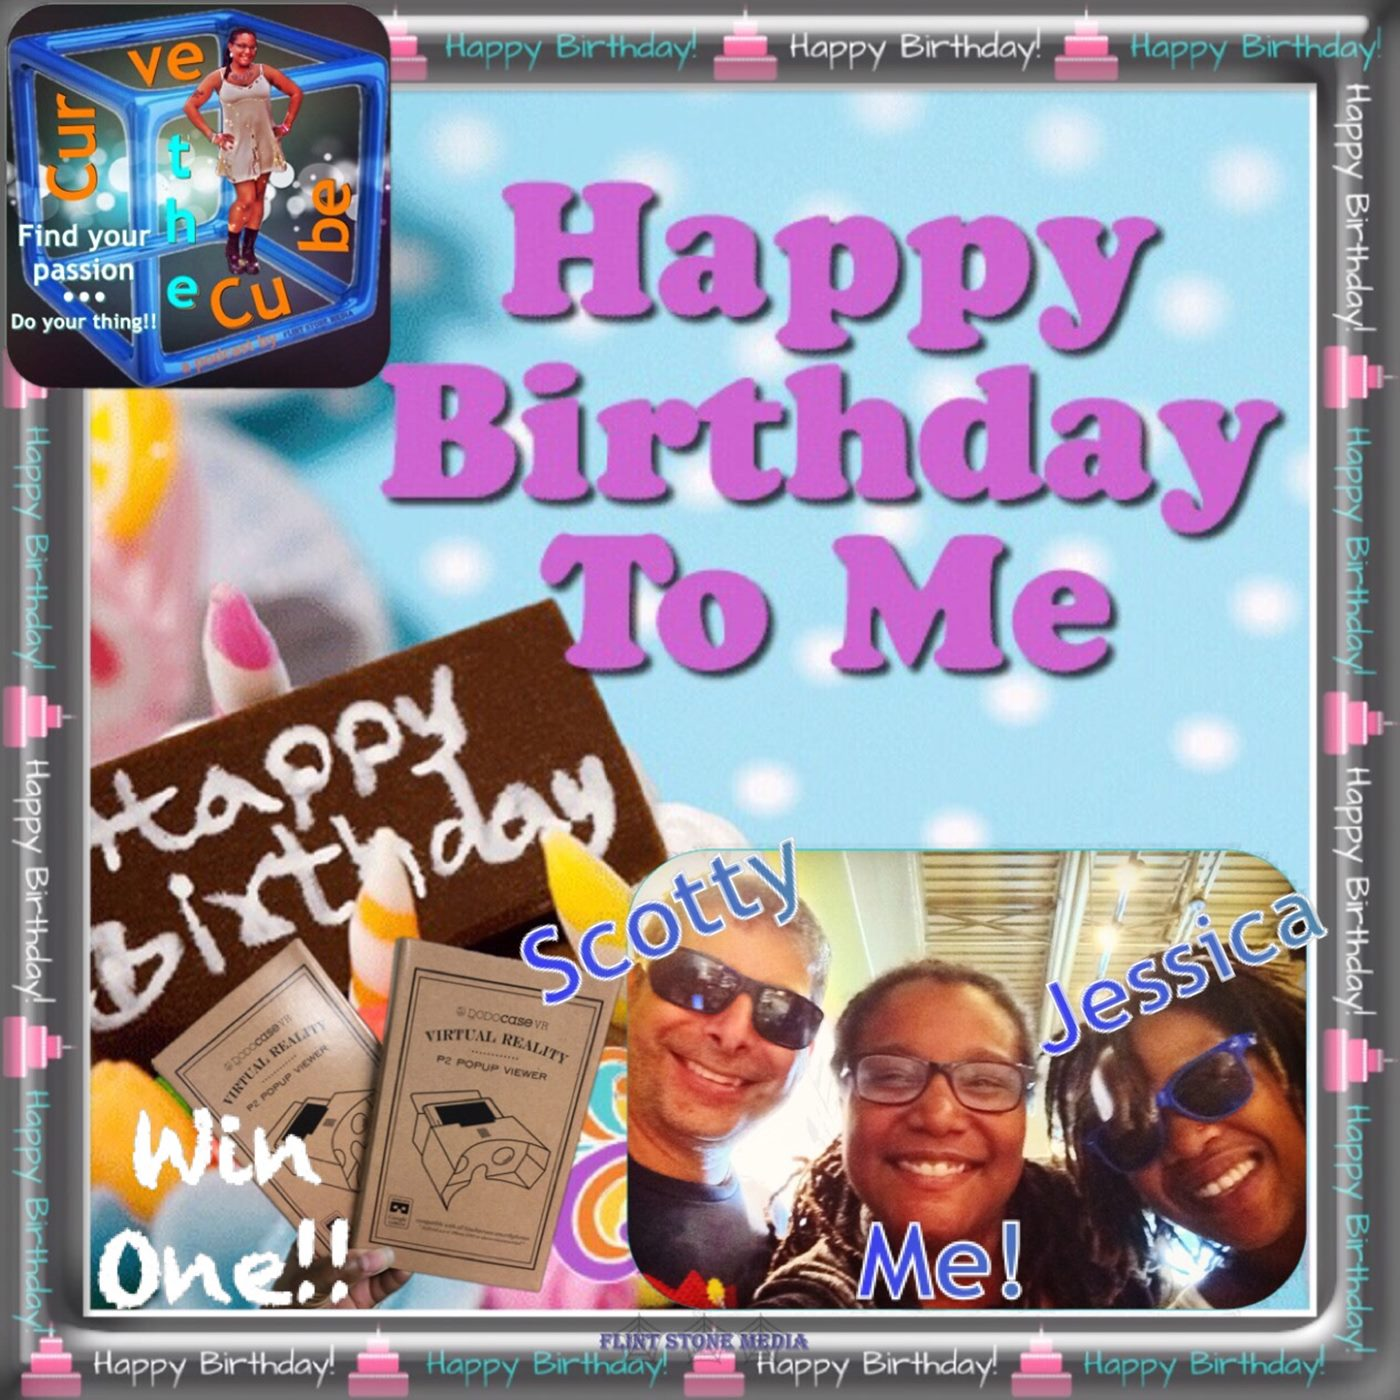 #93 – PODCAST HOST AND PRODUCER JAIME LEGAGNEUR HERSELF!! – It's My Birthday - 2016-08-27